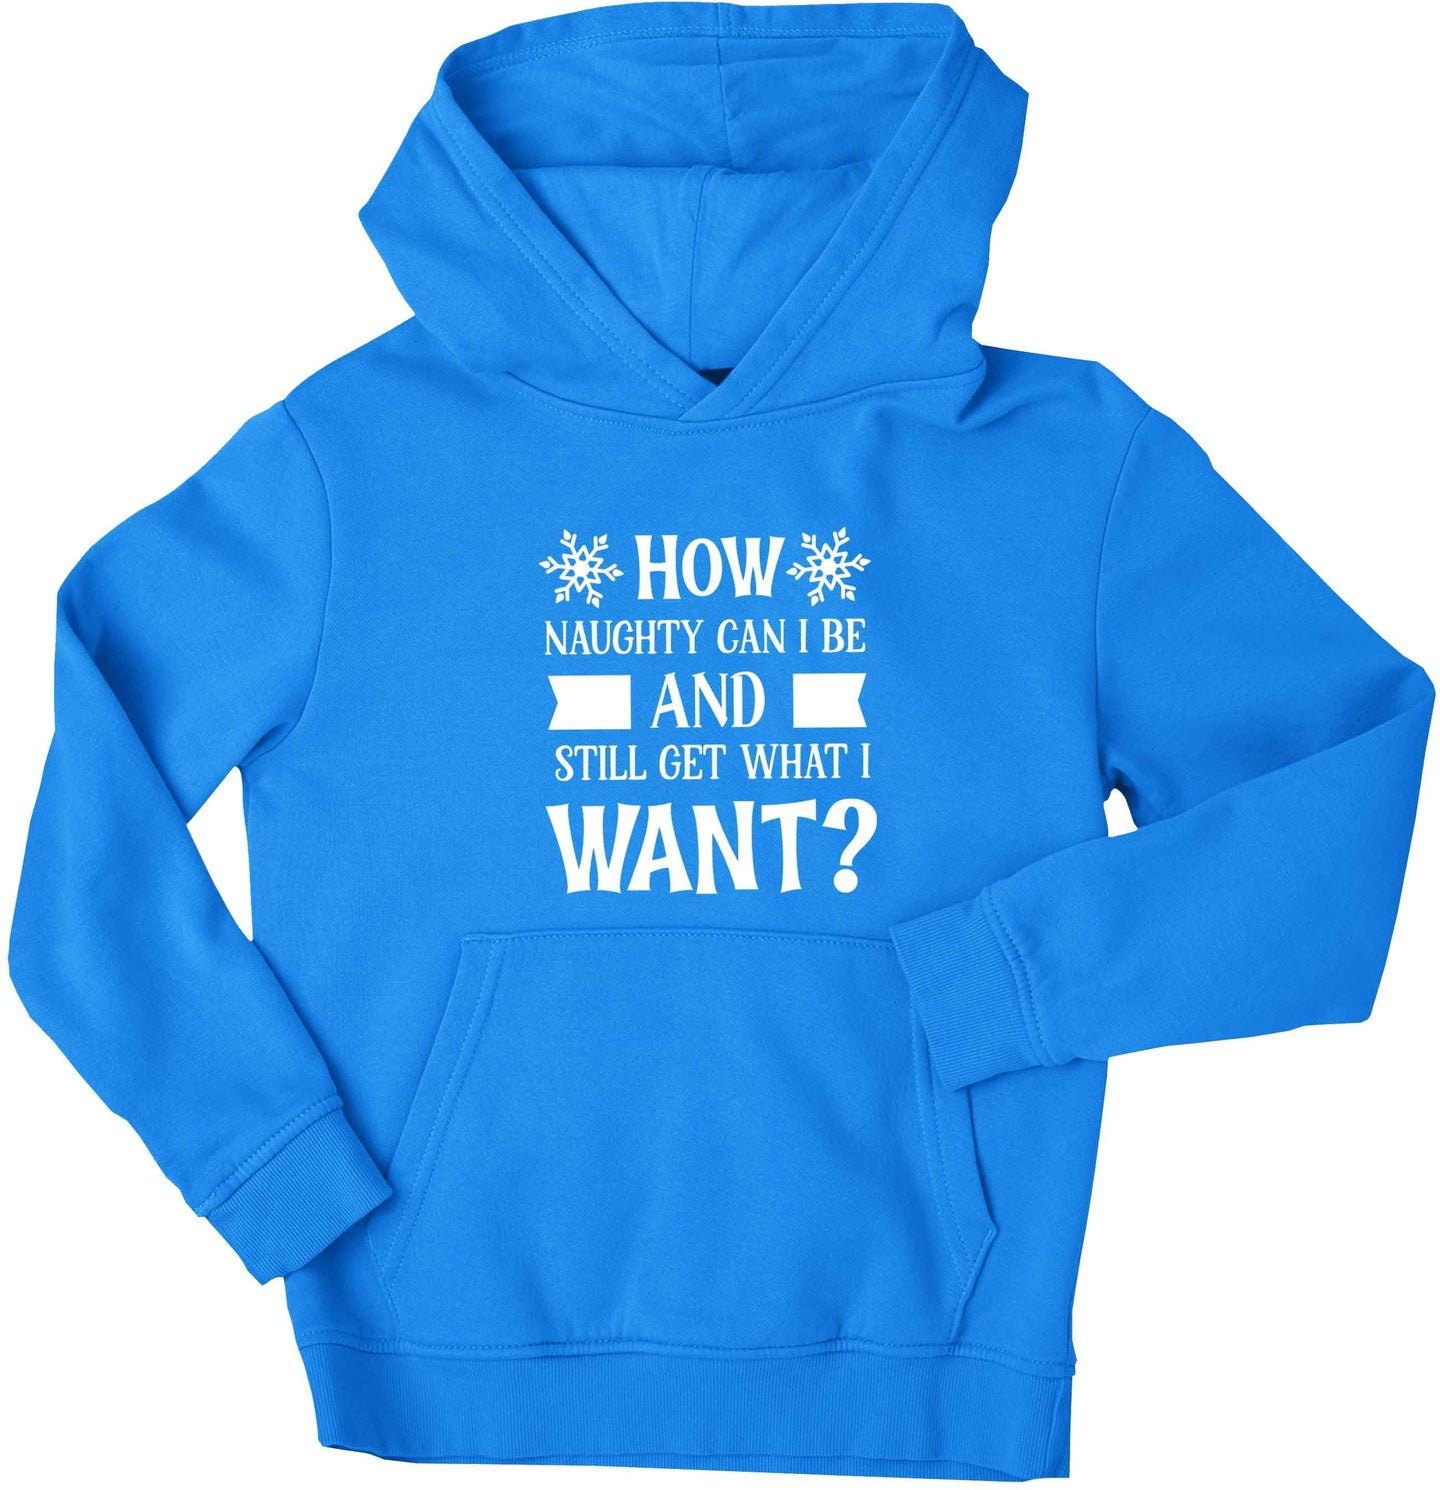 How naughty can I be and still get what I want? children's blue hoodie 12-13 Years